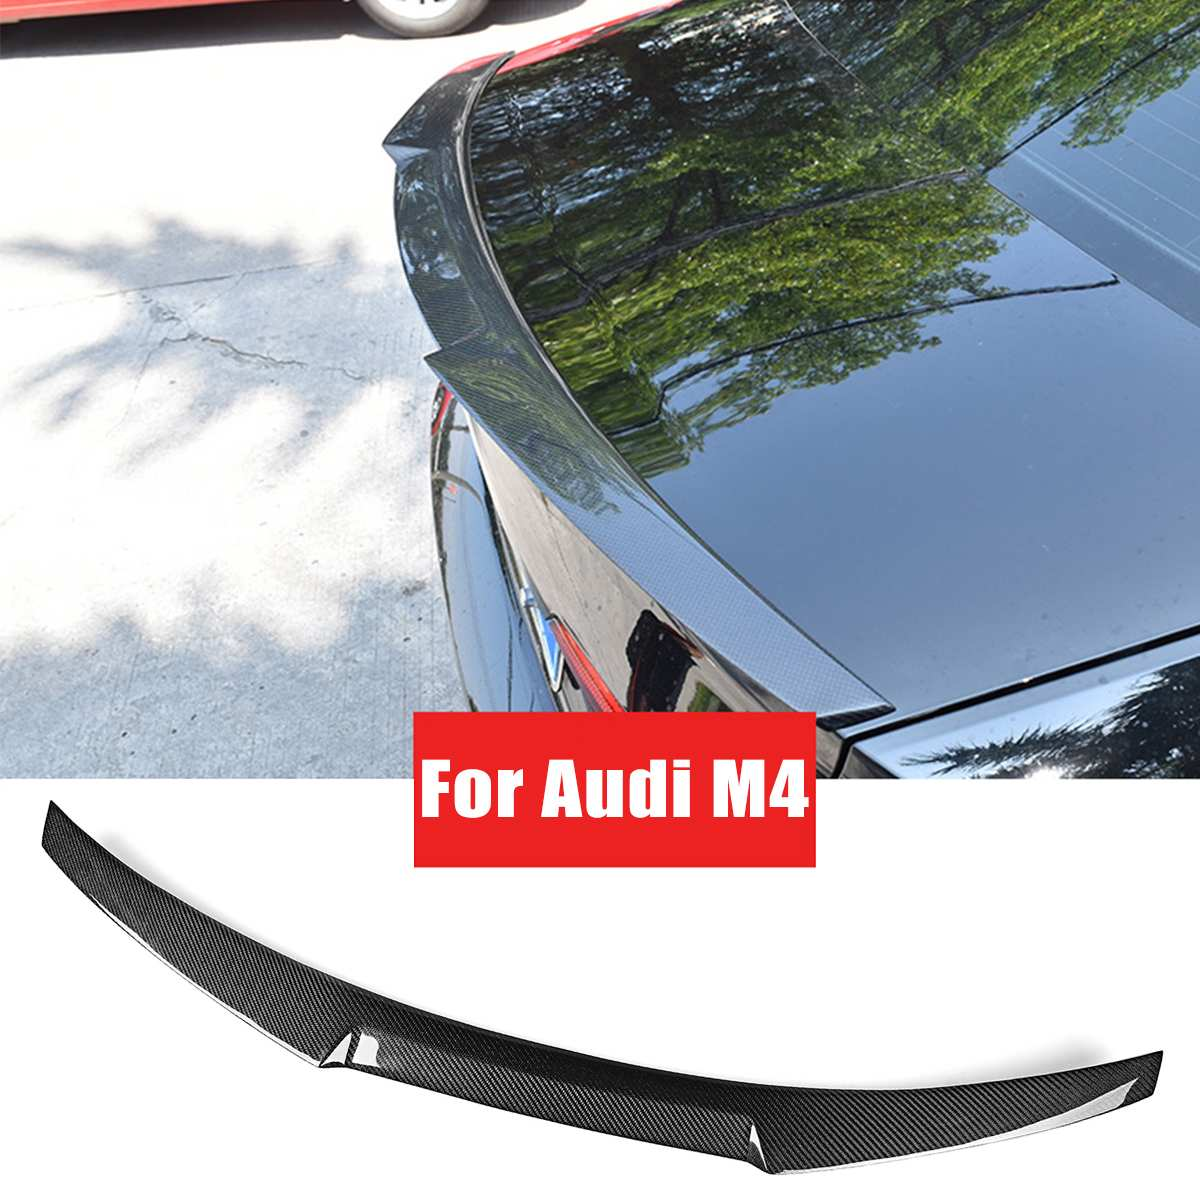 Carbon Fiber Material Rear Boot Trunk Spoiler Boot Lid For <font><b>Audi</b></font> <font><b>A5</b></font> F5 <font><b>Sportback</b></font> 4 Door M4 <font><b>2017</b></font> 2018 image